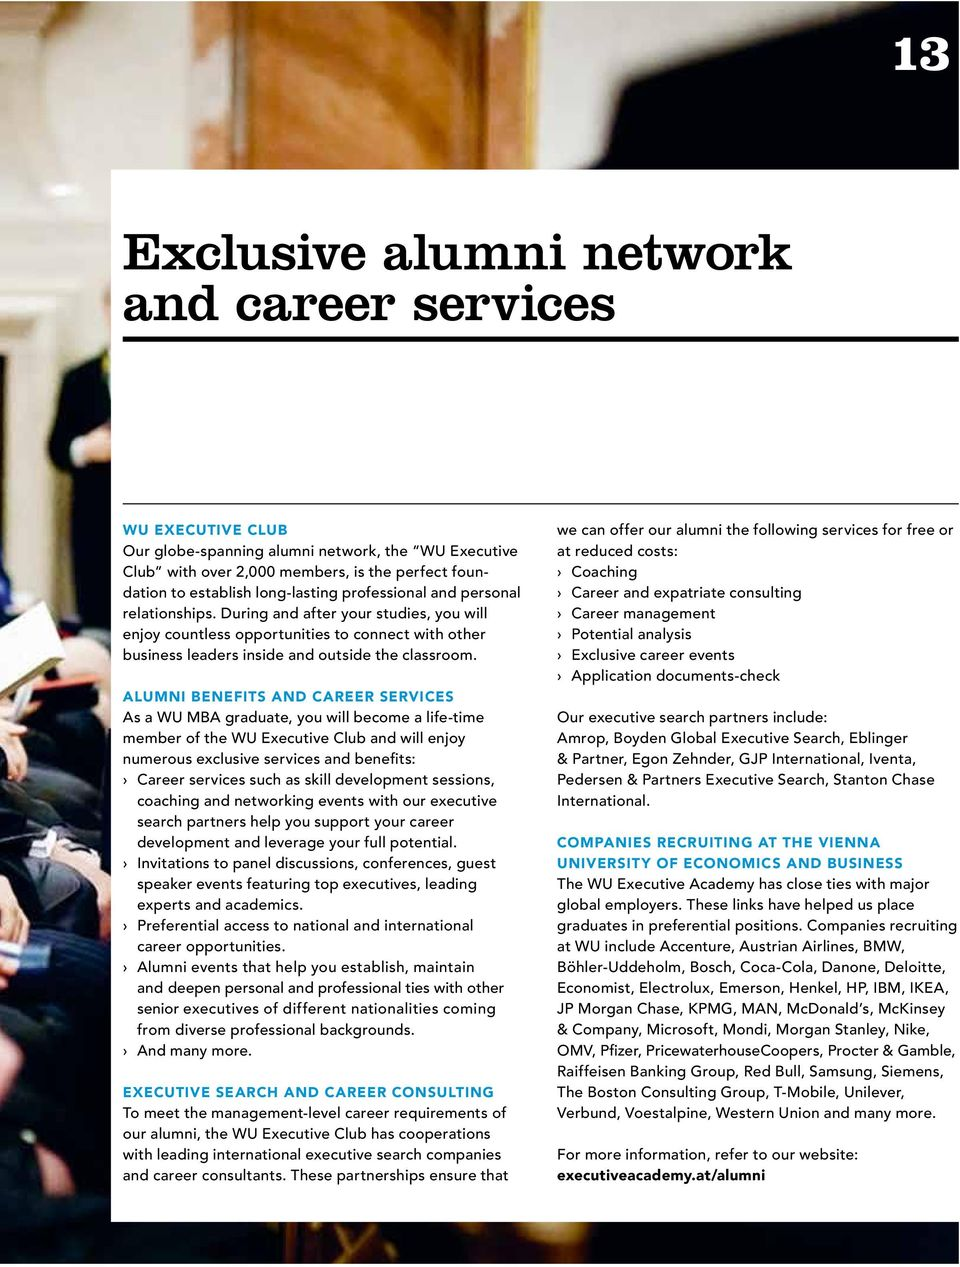 ALUMNI BENEFITS AND CAREER SERVICES As a WU MBA graduate, you will become a life-time member of the WU Executive Club and will enjoy numerous exclusive services and benefits: Career services such as